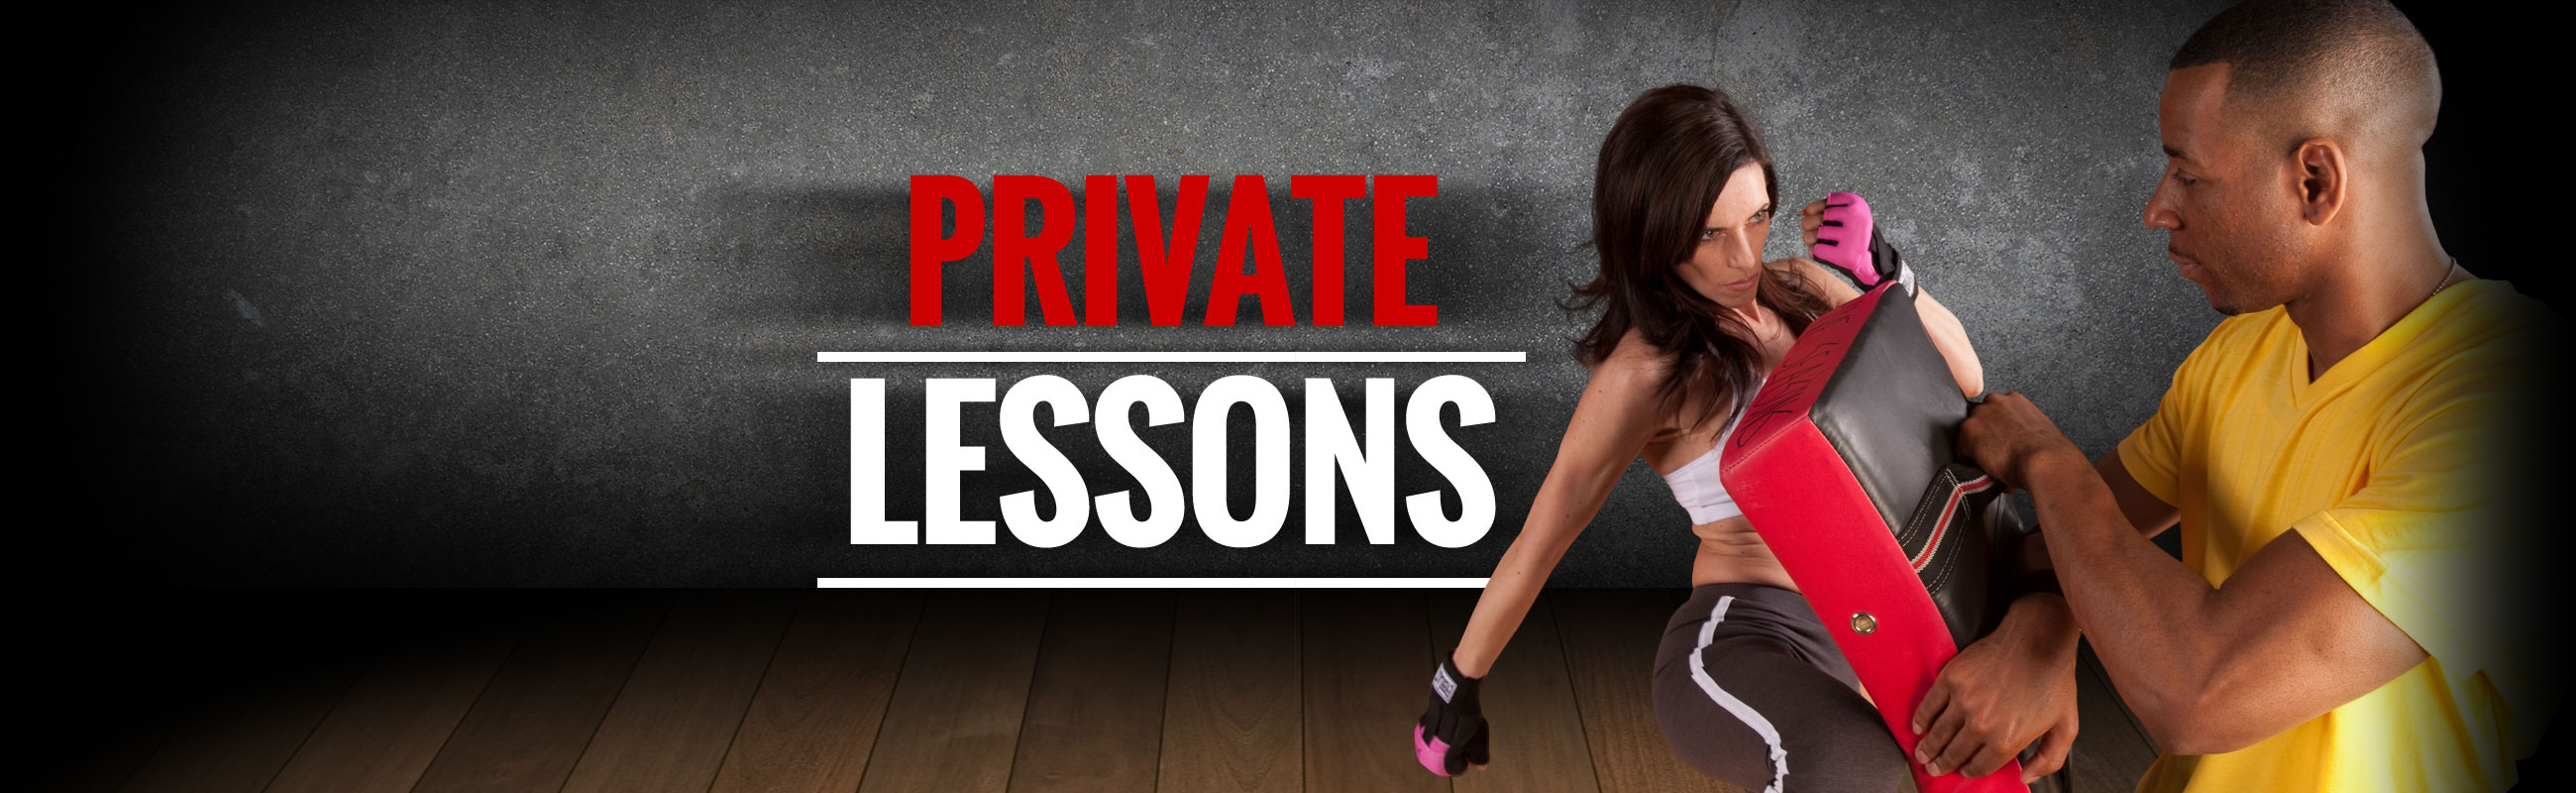 slider-private-lesson-4